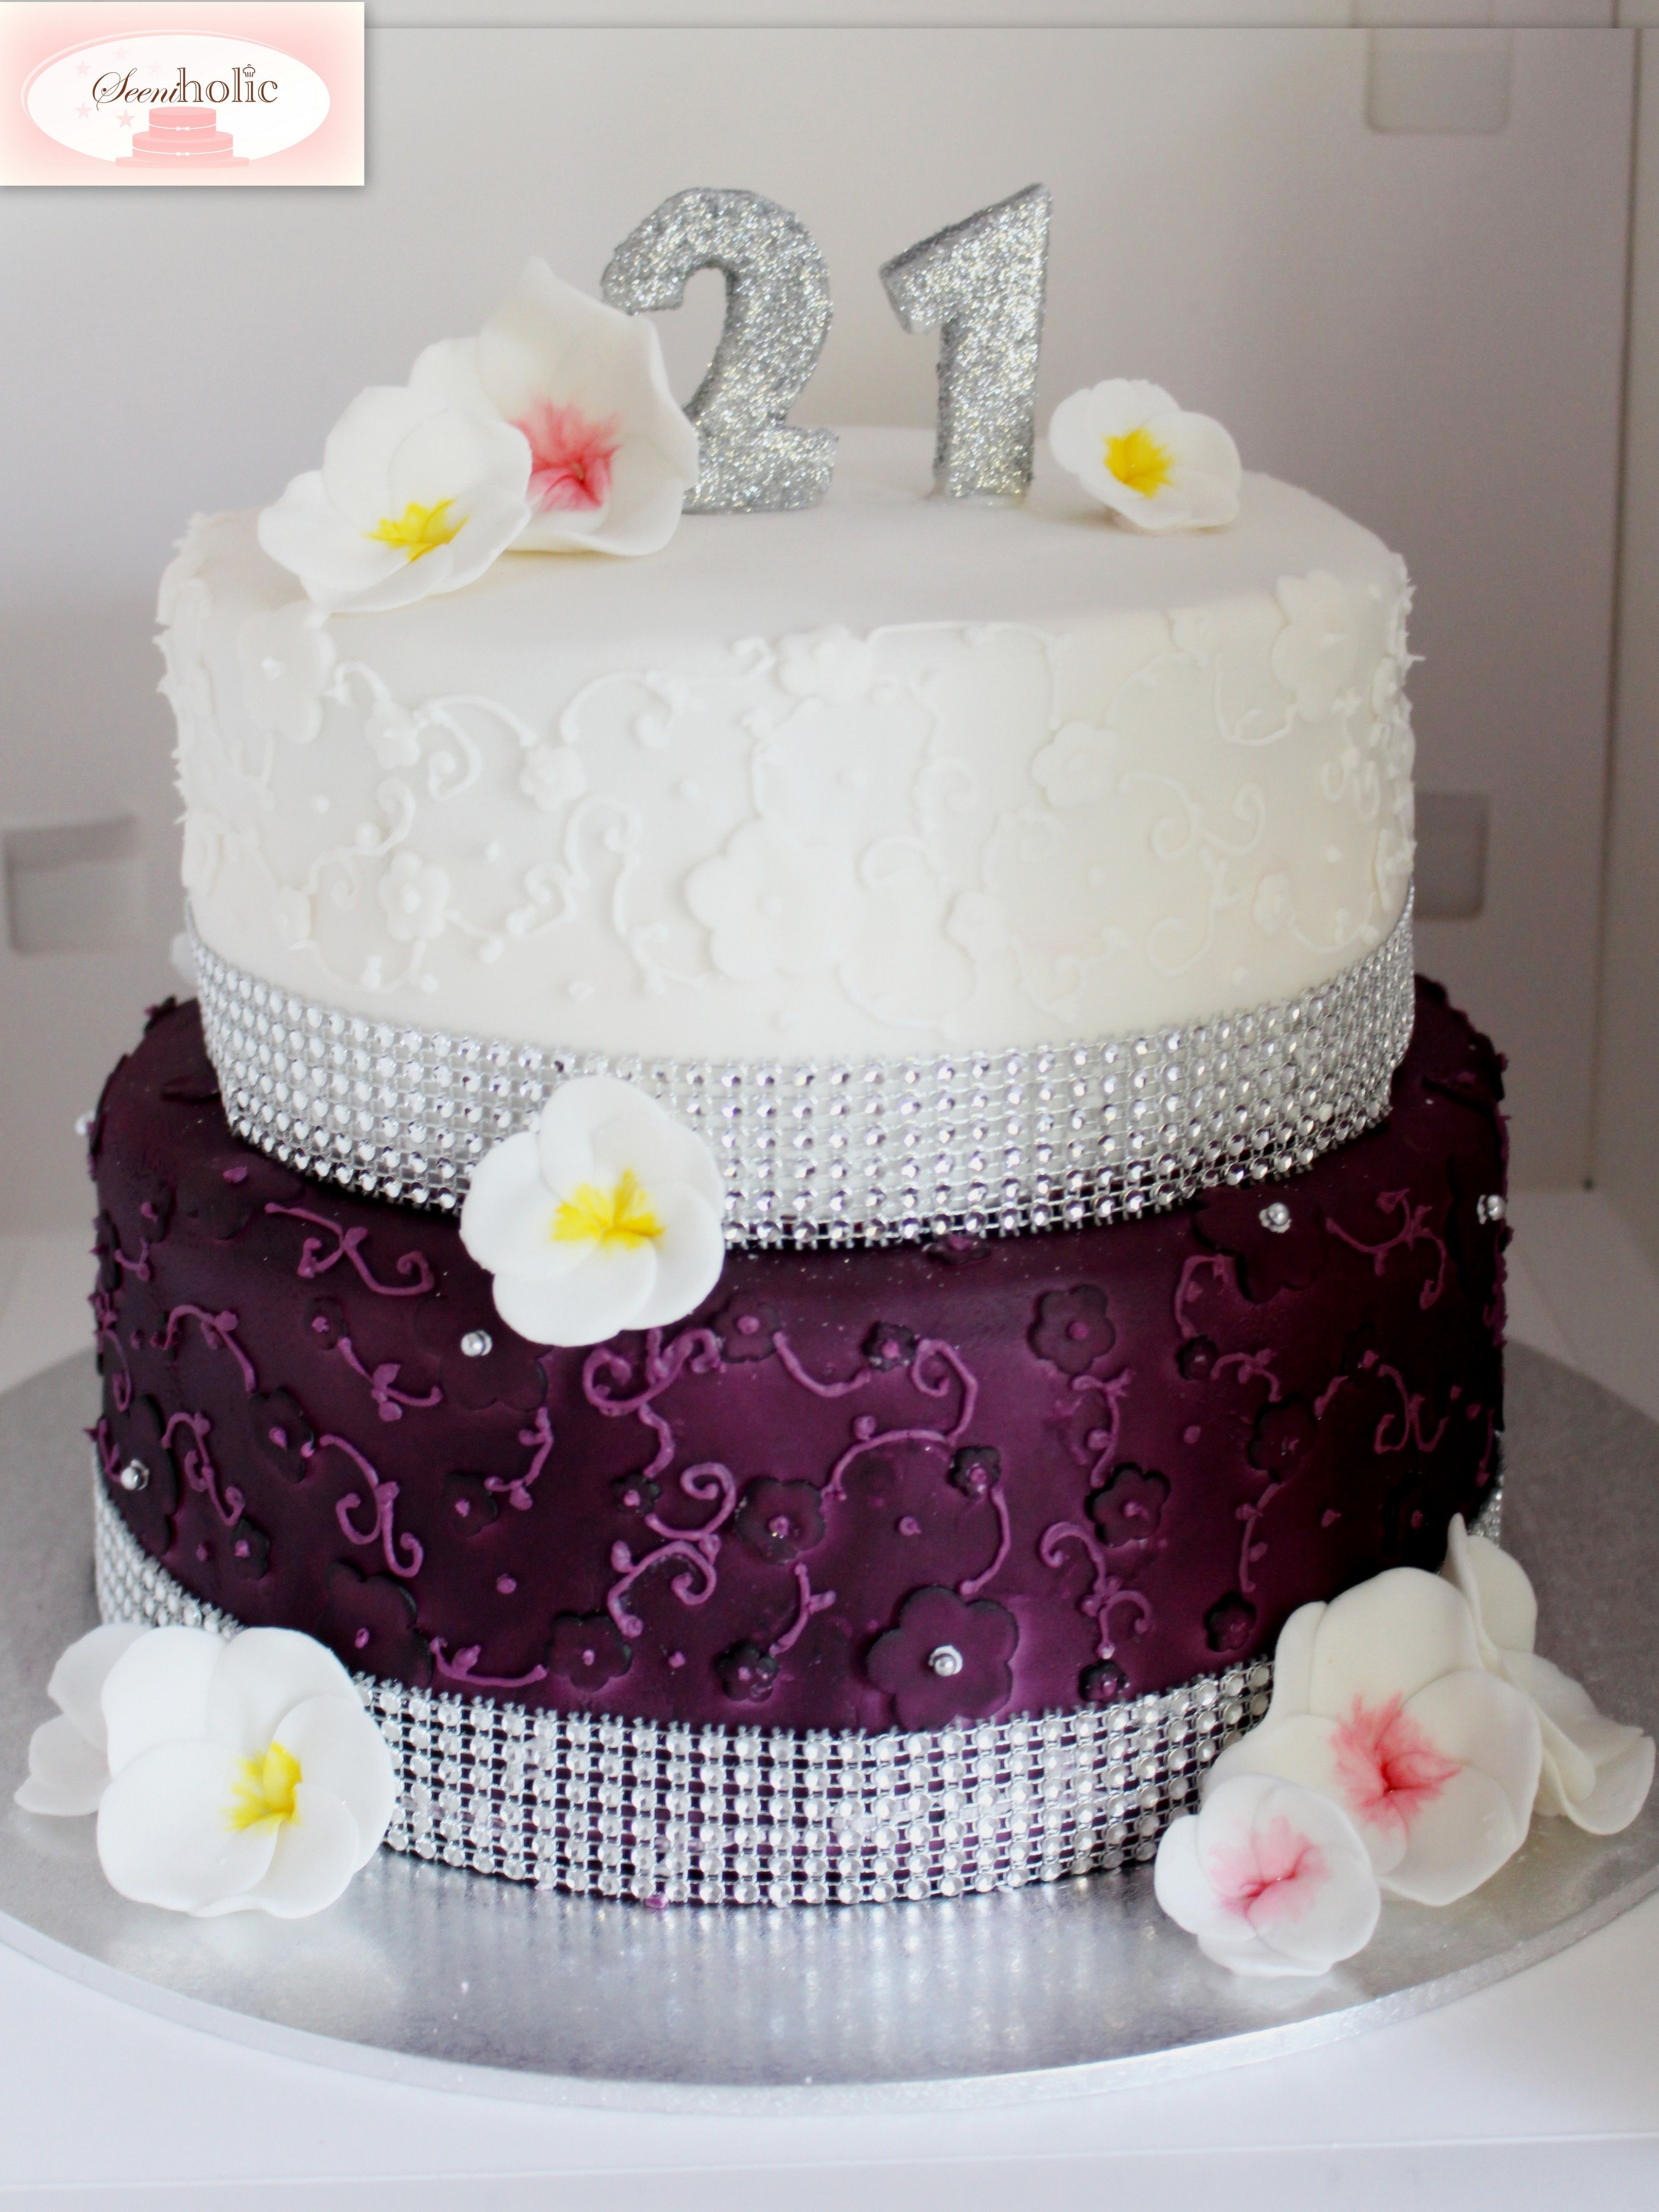 Mauve White And Silver Themed 21st Birthday Cake With Frangipani